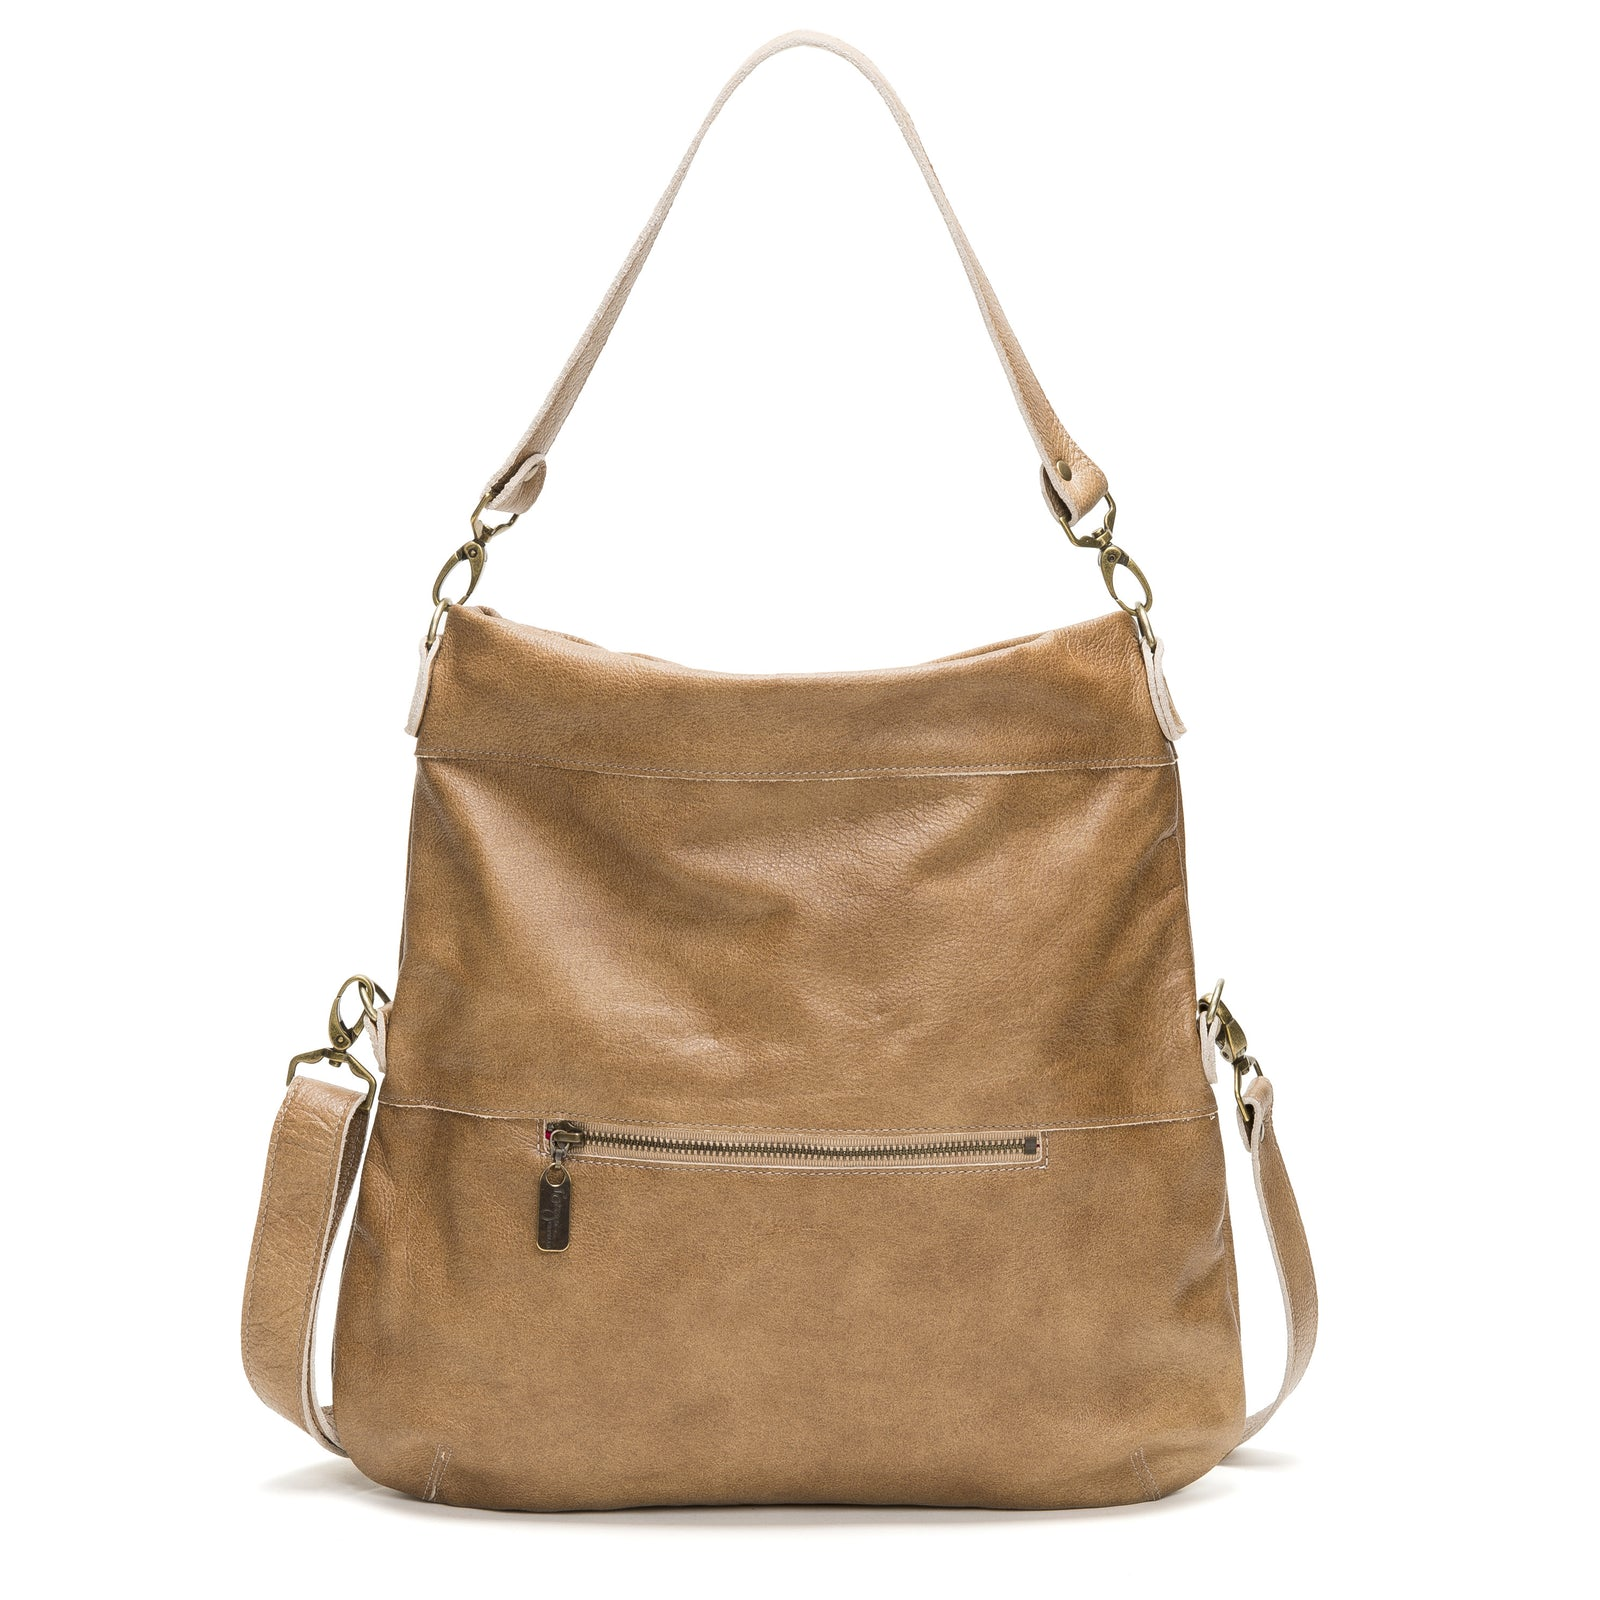 Lauren Crossbody - Rosarito Beach - Brynn Capella, Large Crossbody